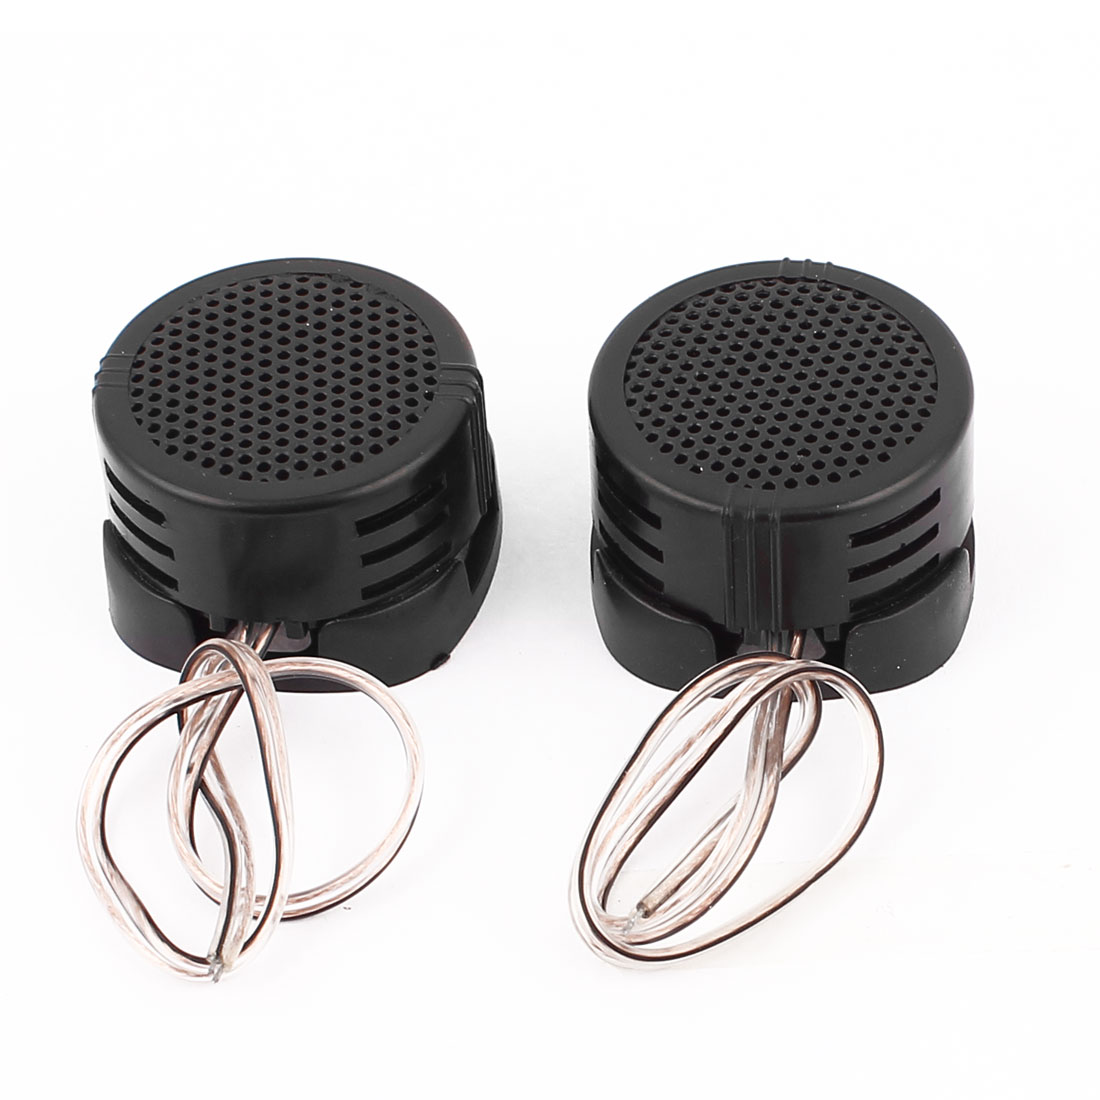 Plastic Shell Car Vehicle Audio Speaker System 500W 97dB Dome Tweeter Black 2pcs